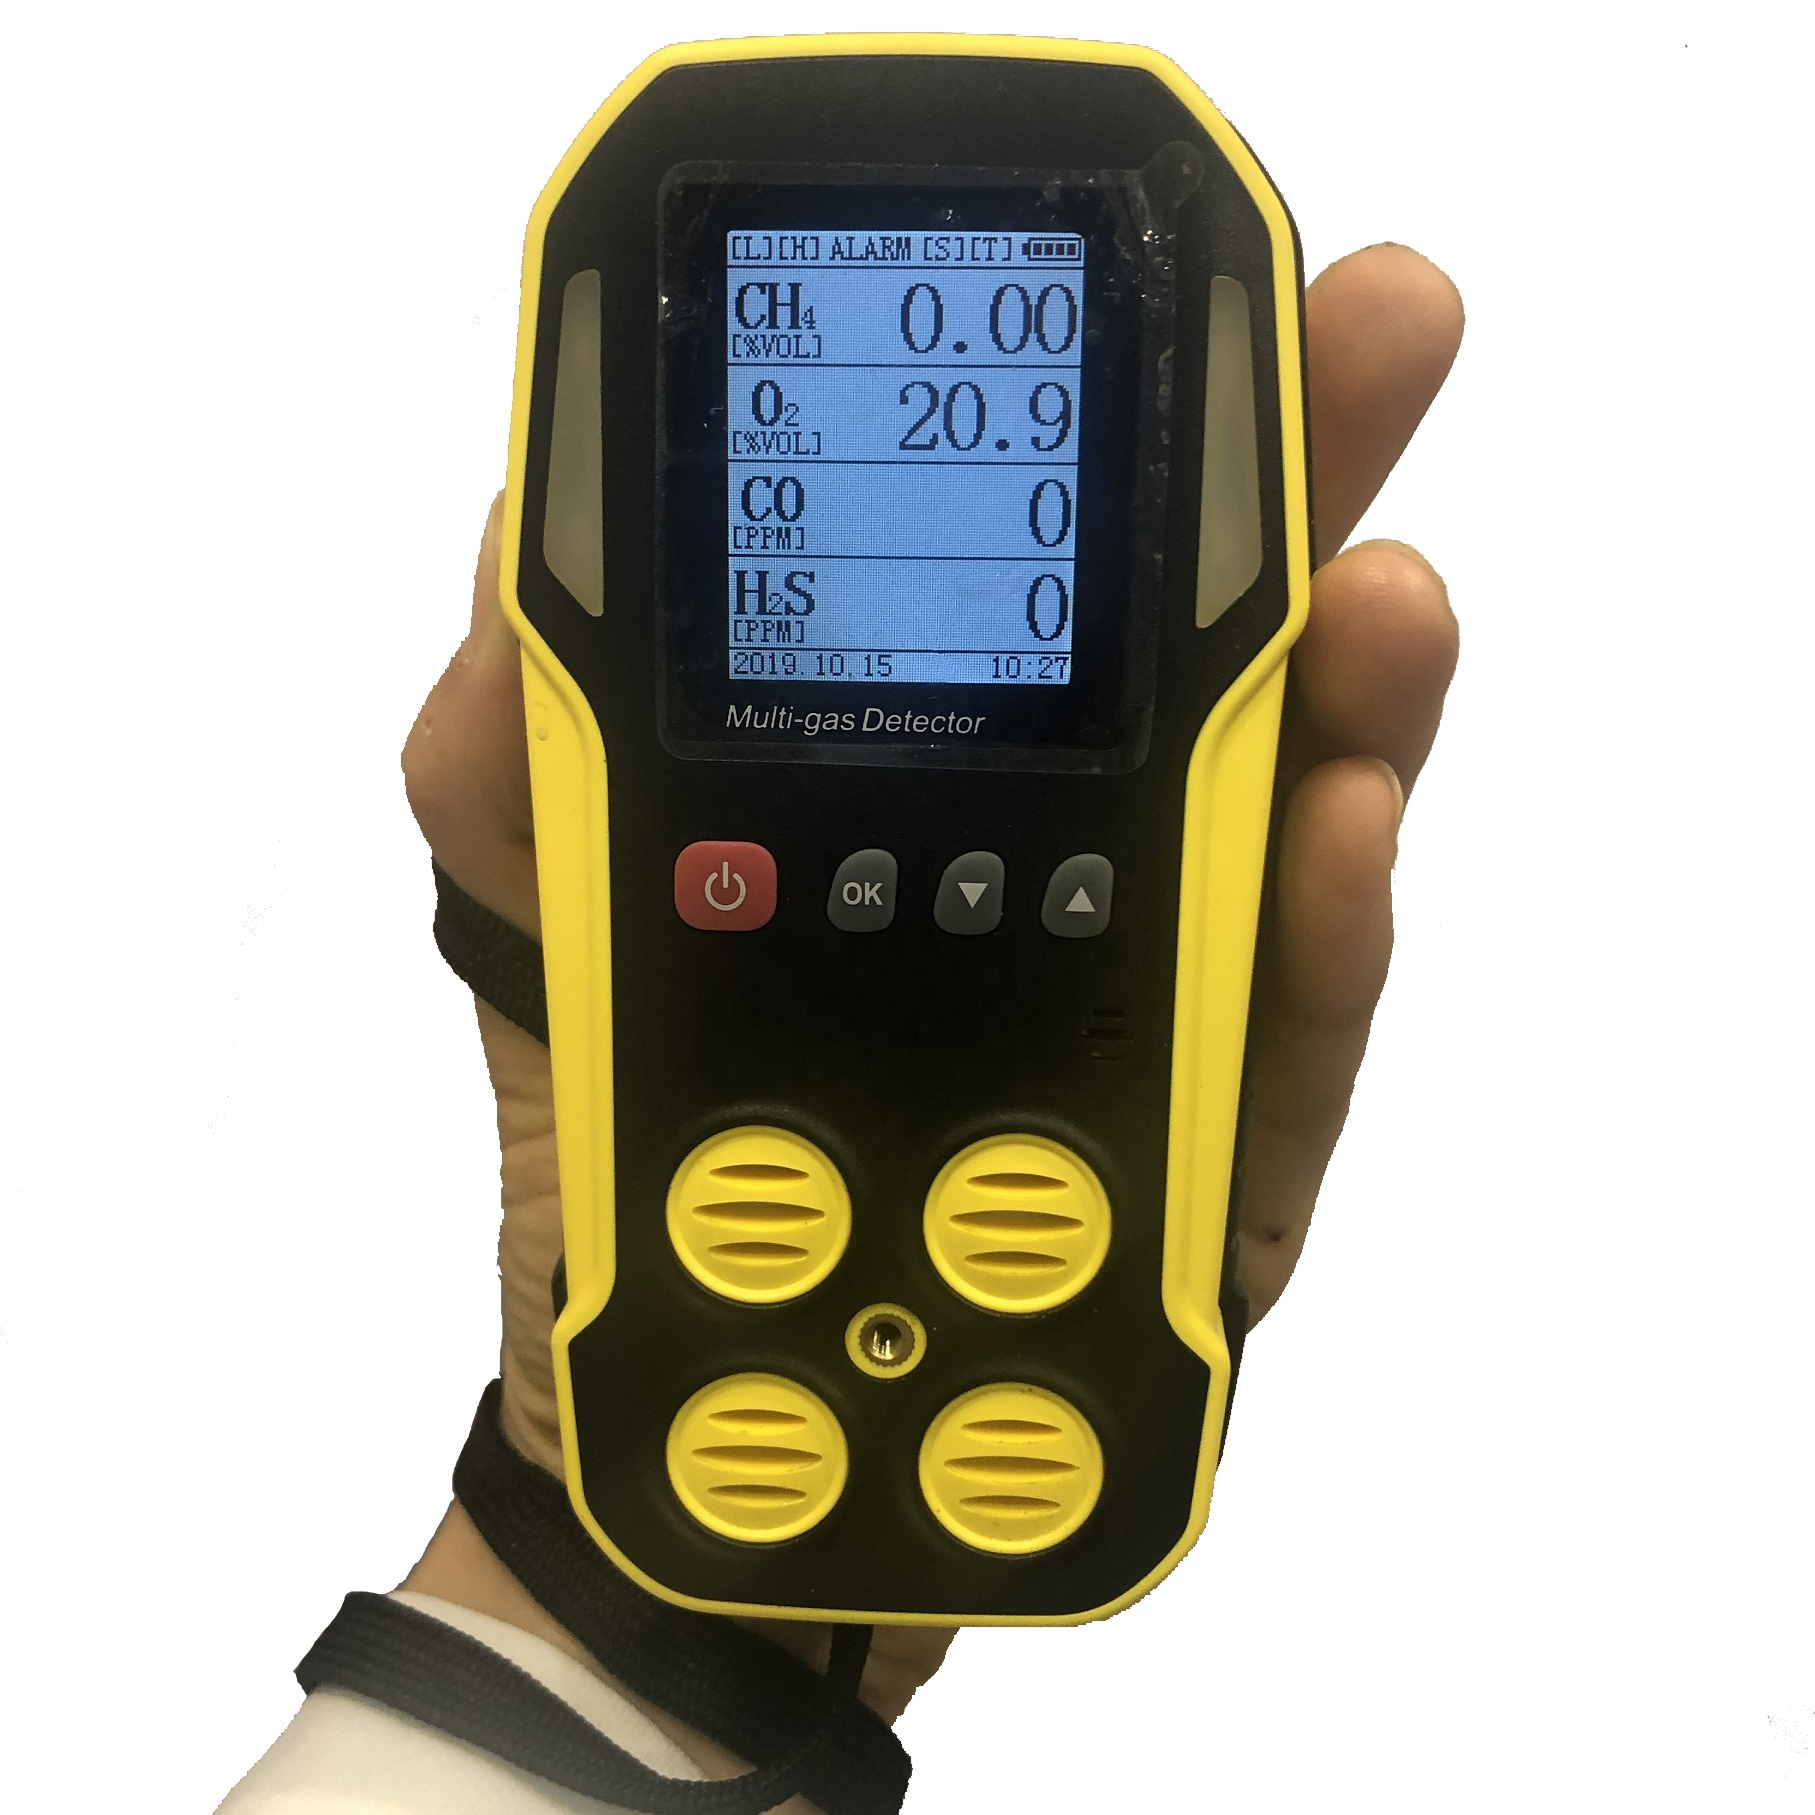 3 Alarms Portable explosive <strong>gas</strong>, CO, H2S and Oxygen analyzer Multi 4 <strong>gas</strong> detecting monitor with rechargeable battery